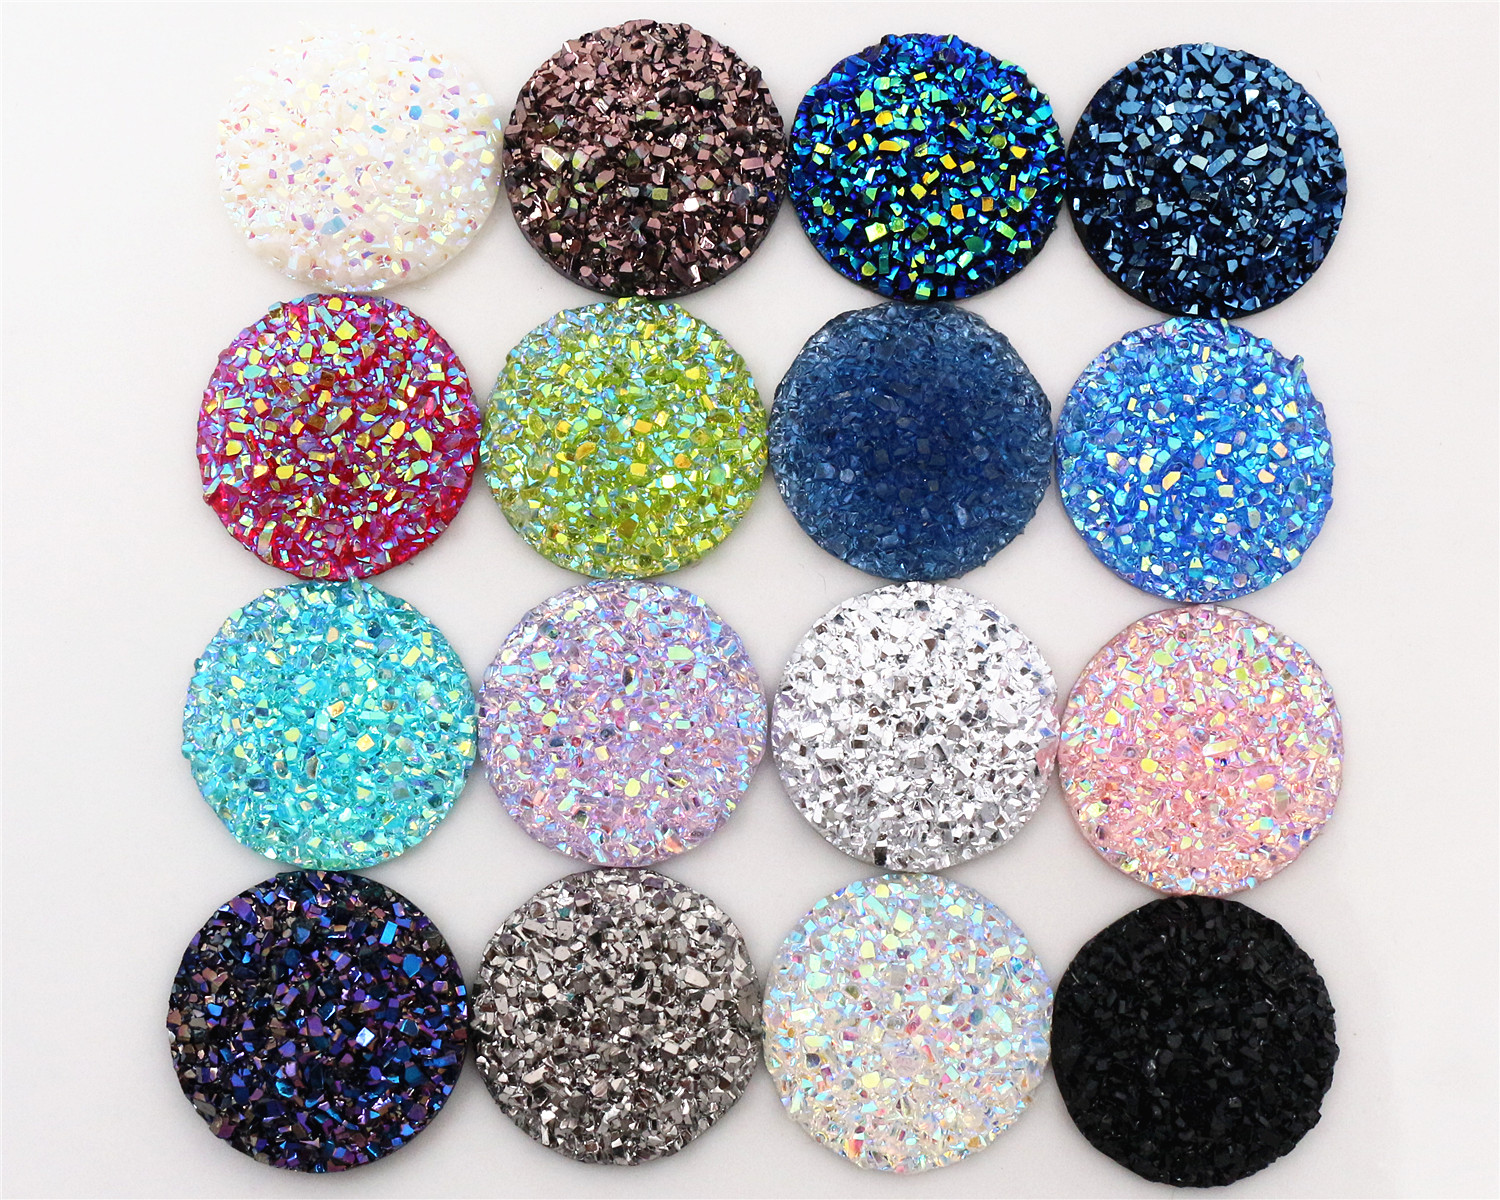 New Fashion 10pcs 20mm Mix Colors Natural ore Style Flat back Resin Cabochons For Bracelet Earrings accessoriesNew Fashion 10pcs 20mm Mix Colors Natural ore Style Flat back Resin Cabochons For Bracelet Earrings accessories